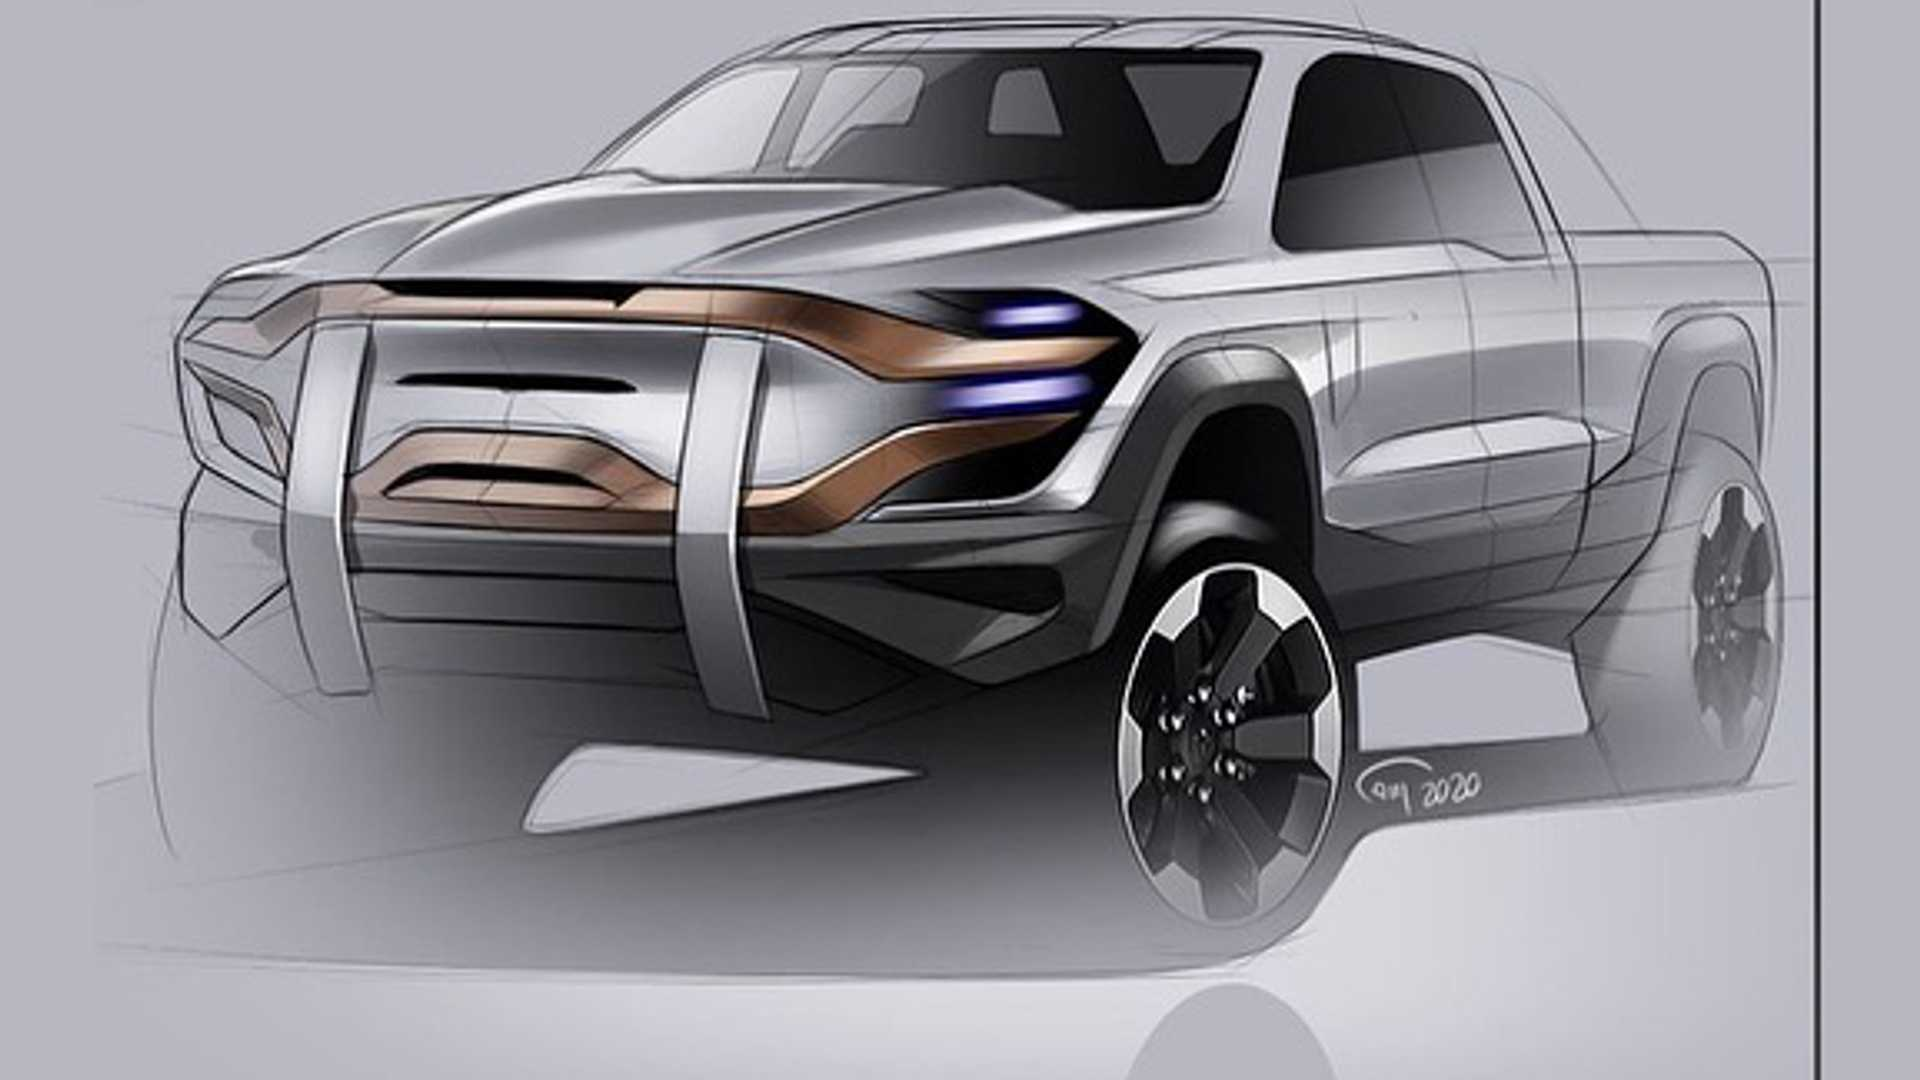 fca-drive-for-design-ram-sketch-battle-4